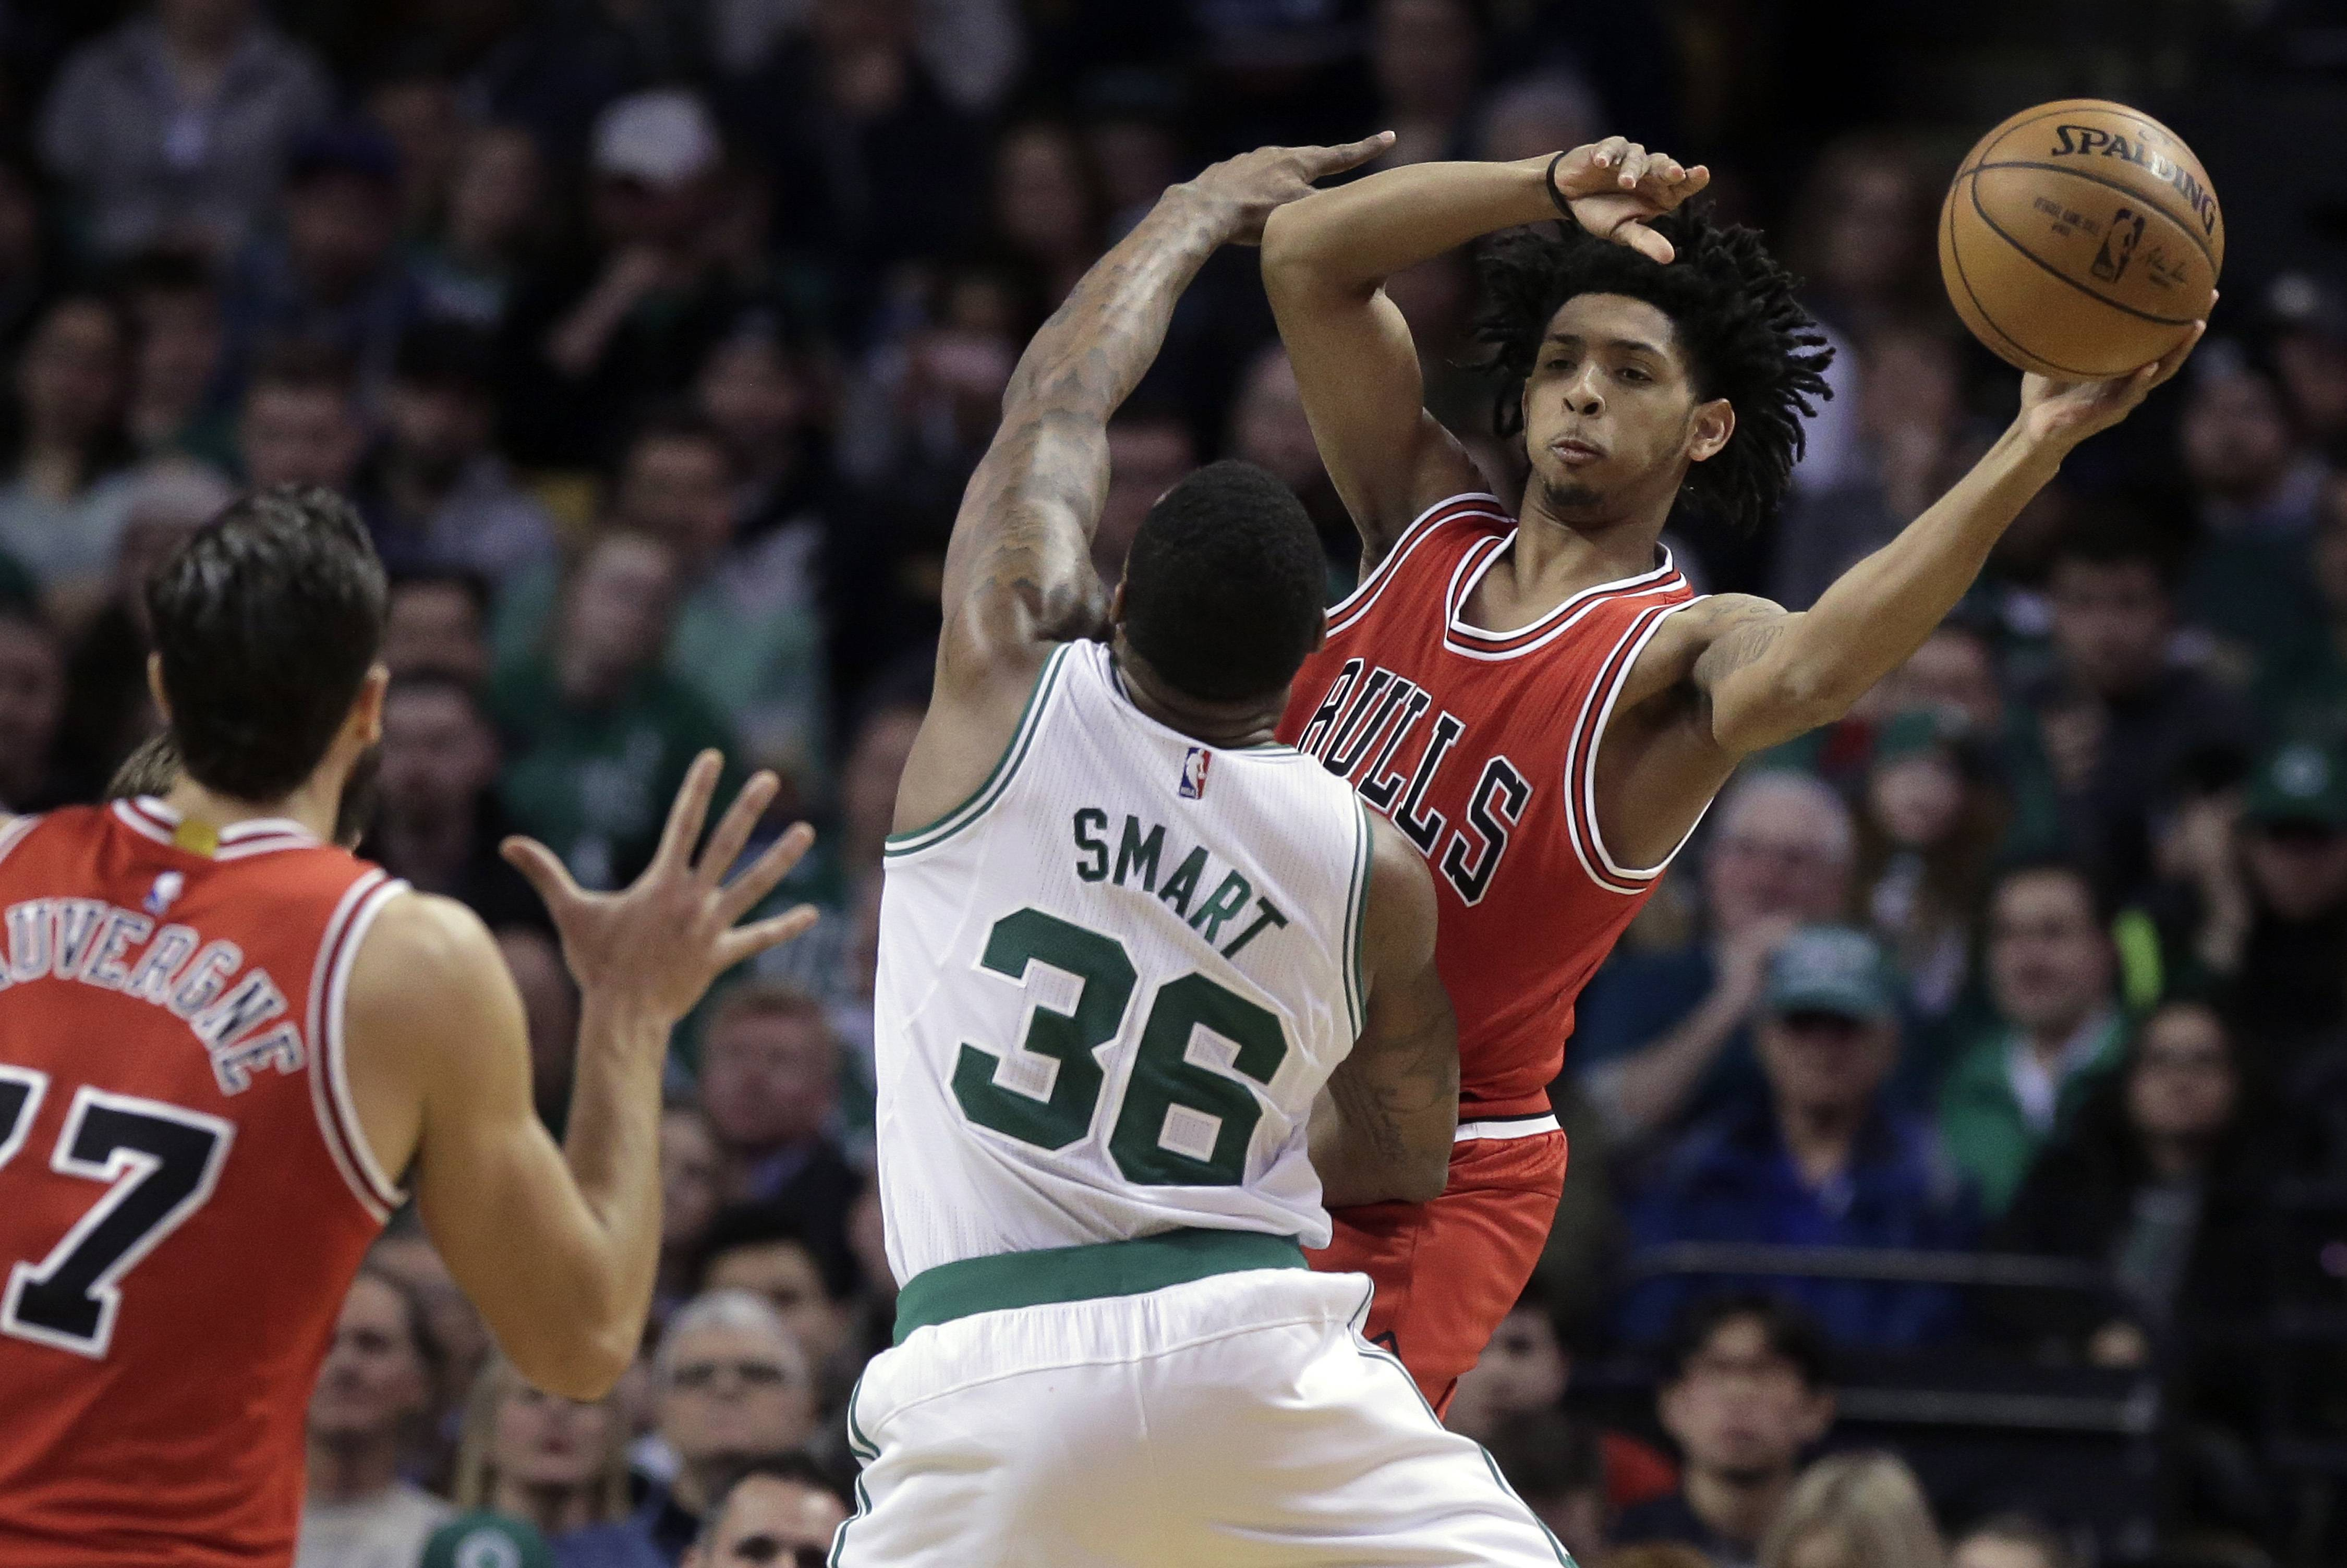 Chicago Bulls guard Cameron Payne, right, passes to Bulls center Joffrey Lauvergne, left, of France, as Boston Celtics guard Marcus Smart (36) tries to block him in the fourth quarter of an NBA basketball game, Sunday, March 12, 2017, in Boston.